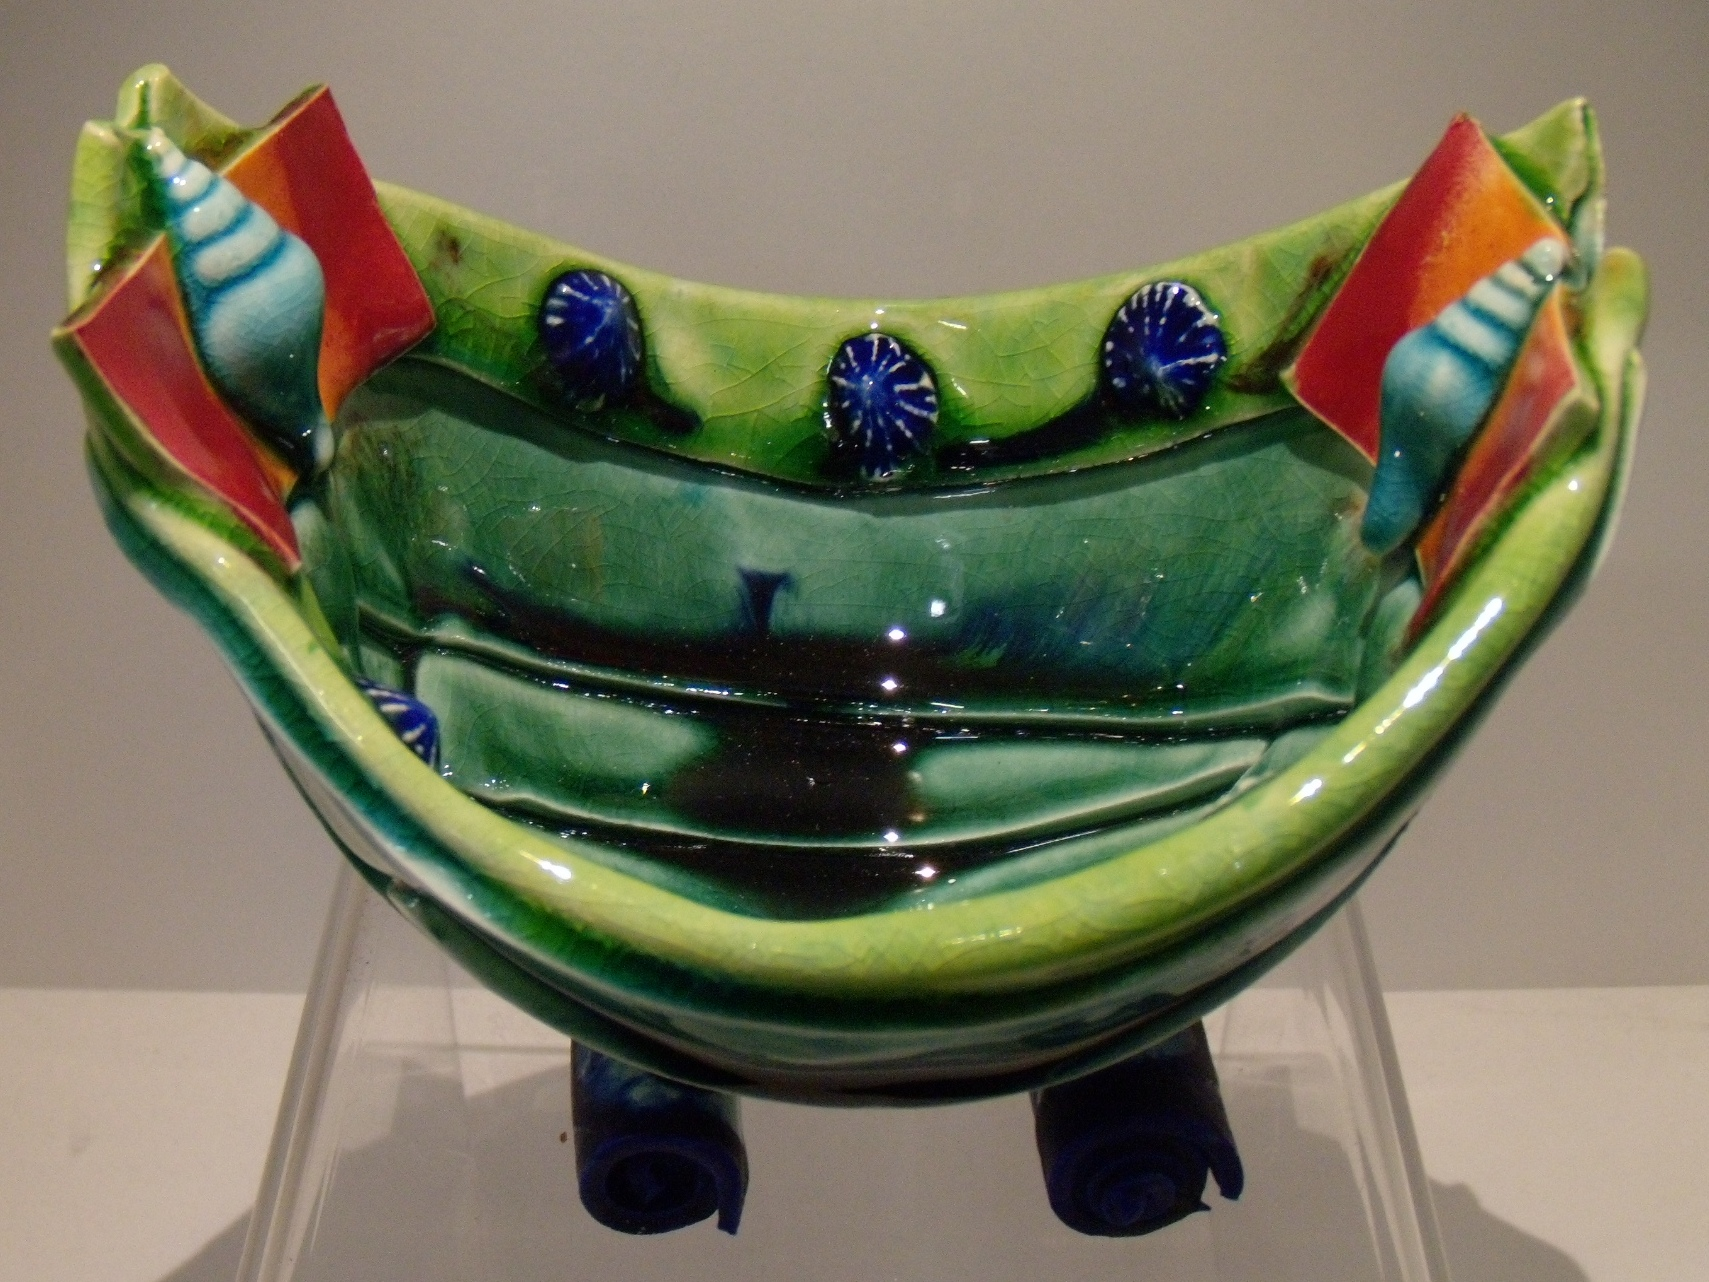 Small Green Rim Boat $120 Measures 140 mm w x 110 mm h